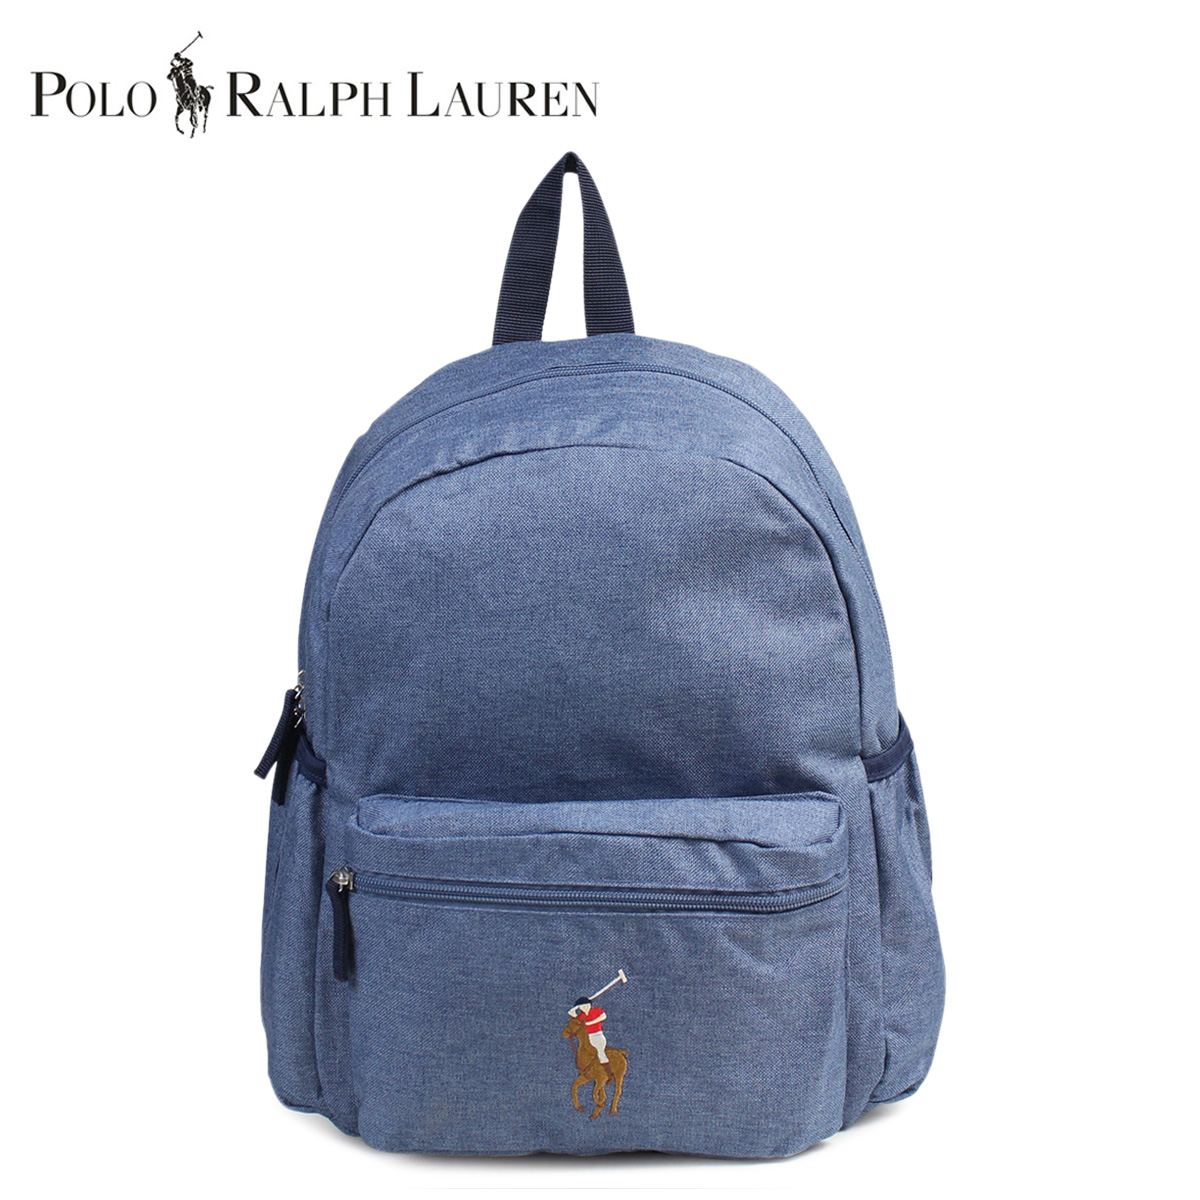 ALLSPORTS  RALPH LAUREN rucksack bag backpack kids big pony POLO Ralph  Lauren polo blue  7 26 Shinnyu load   177   420f674dcc093